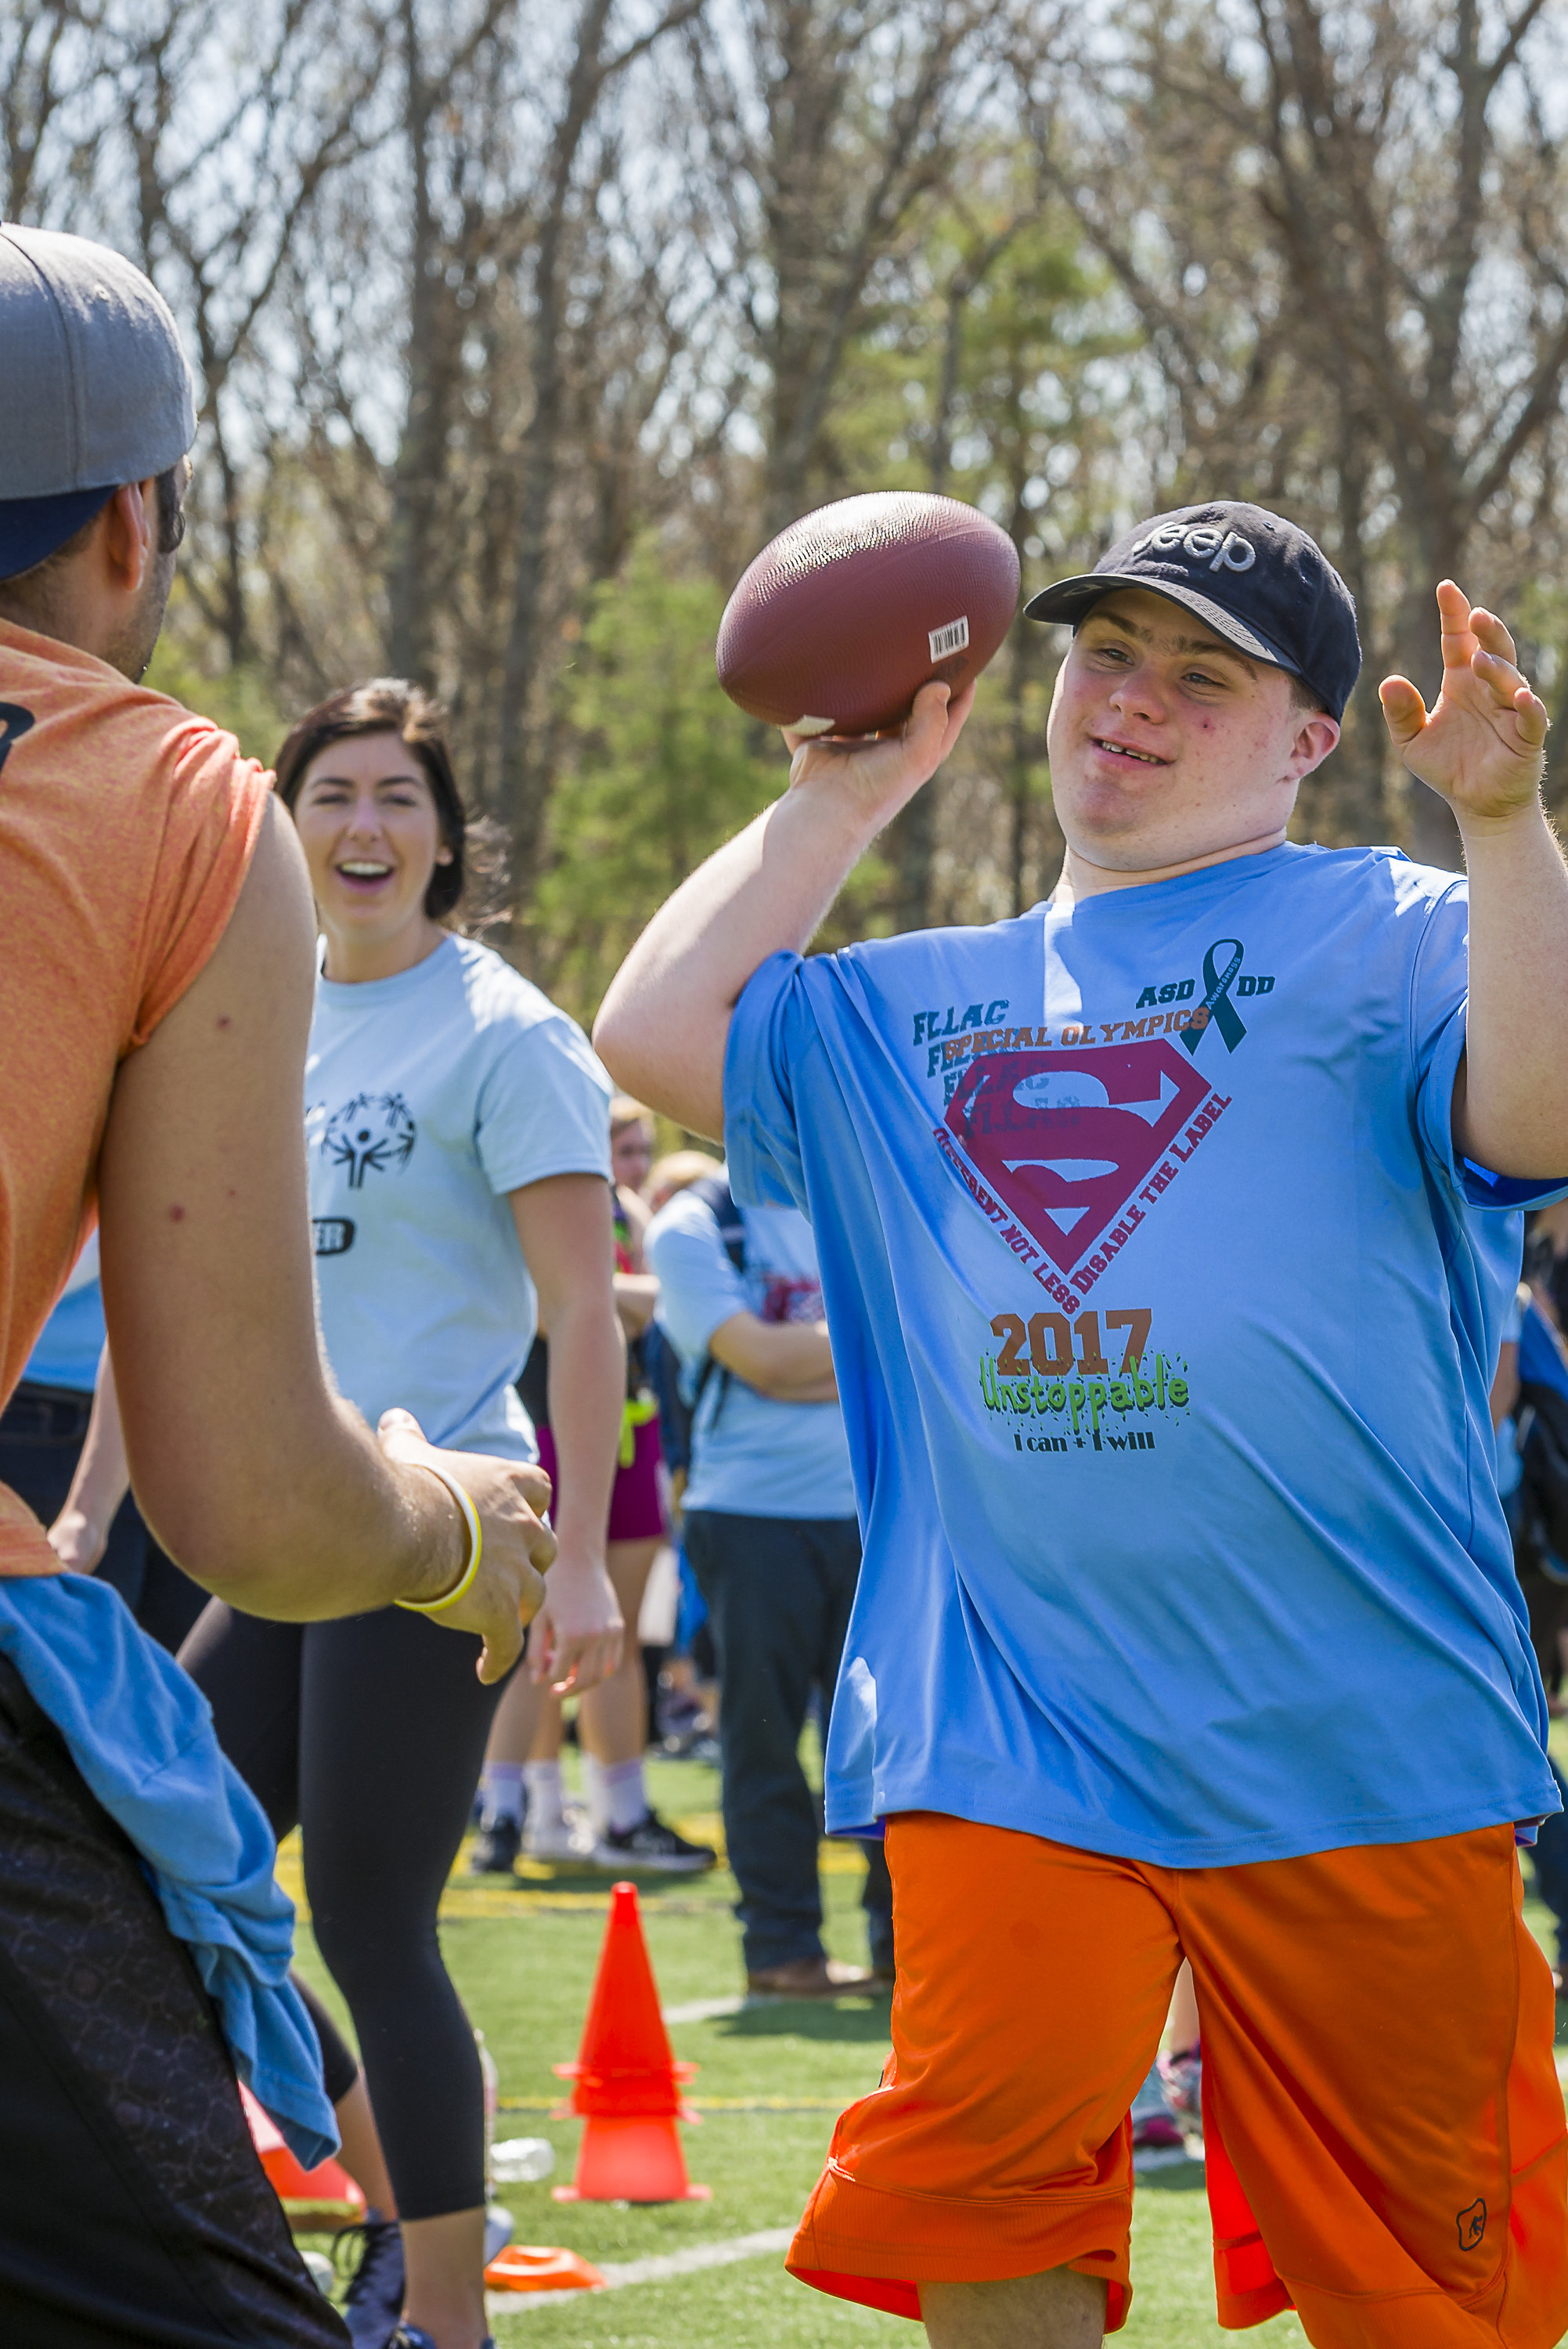 Special Olympics 2017 FLLAC Collaborative